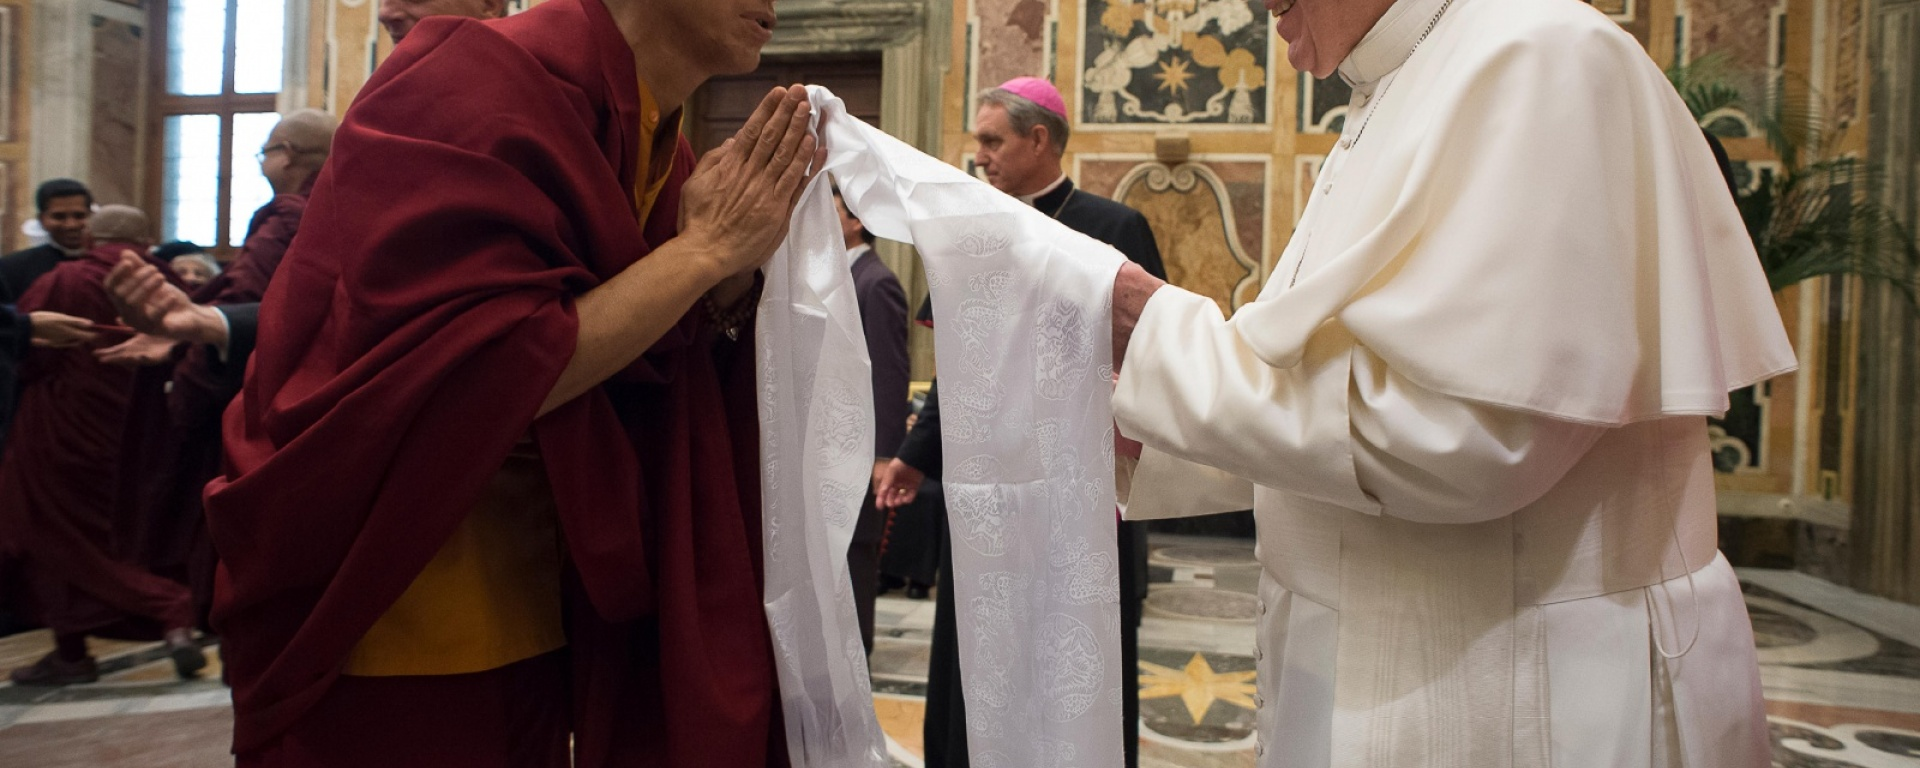 Pope Francis greets a Buddhist monk during a November audience with religious leaders at the Vatican / CNS photo